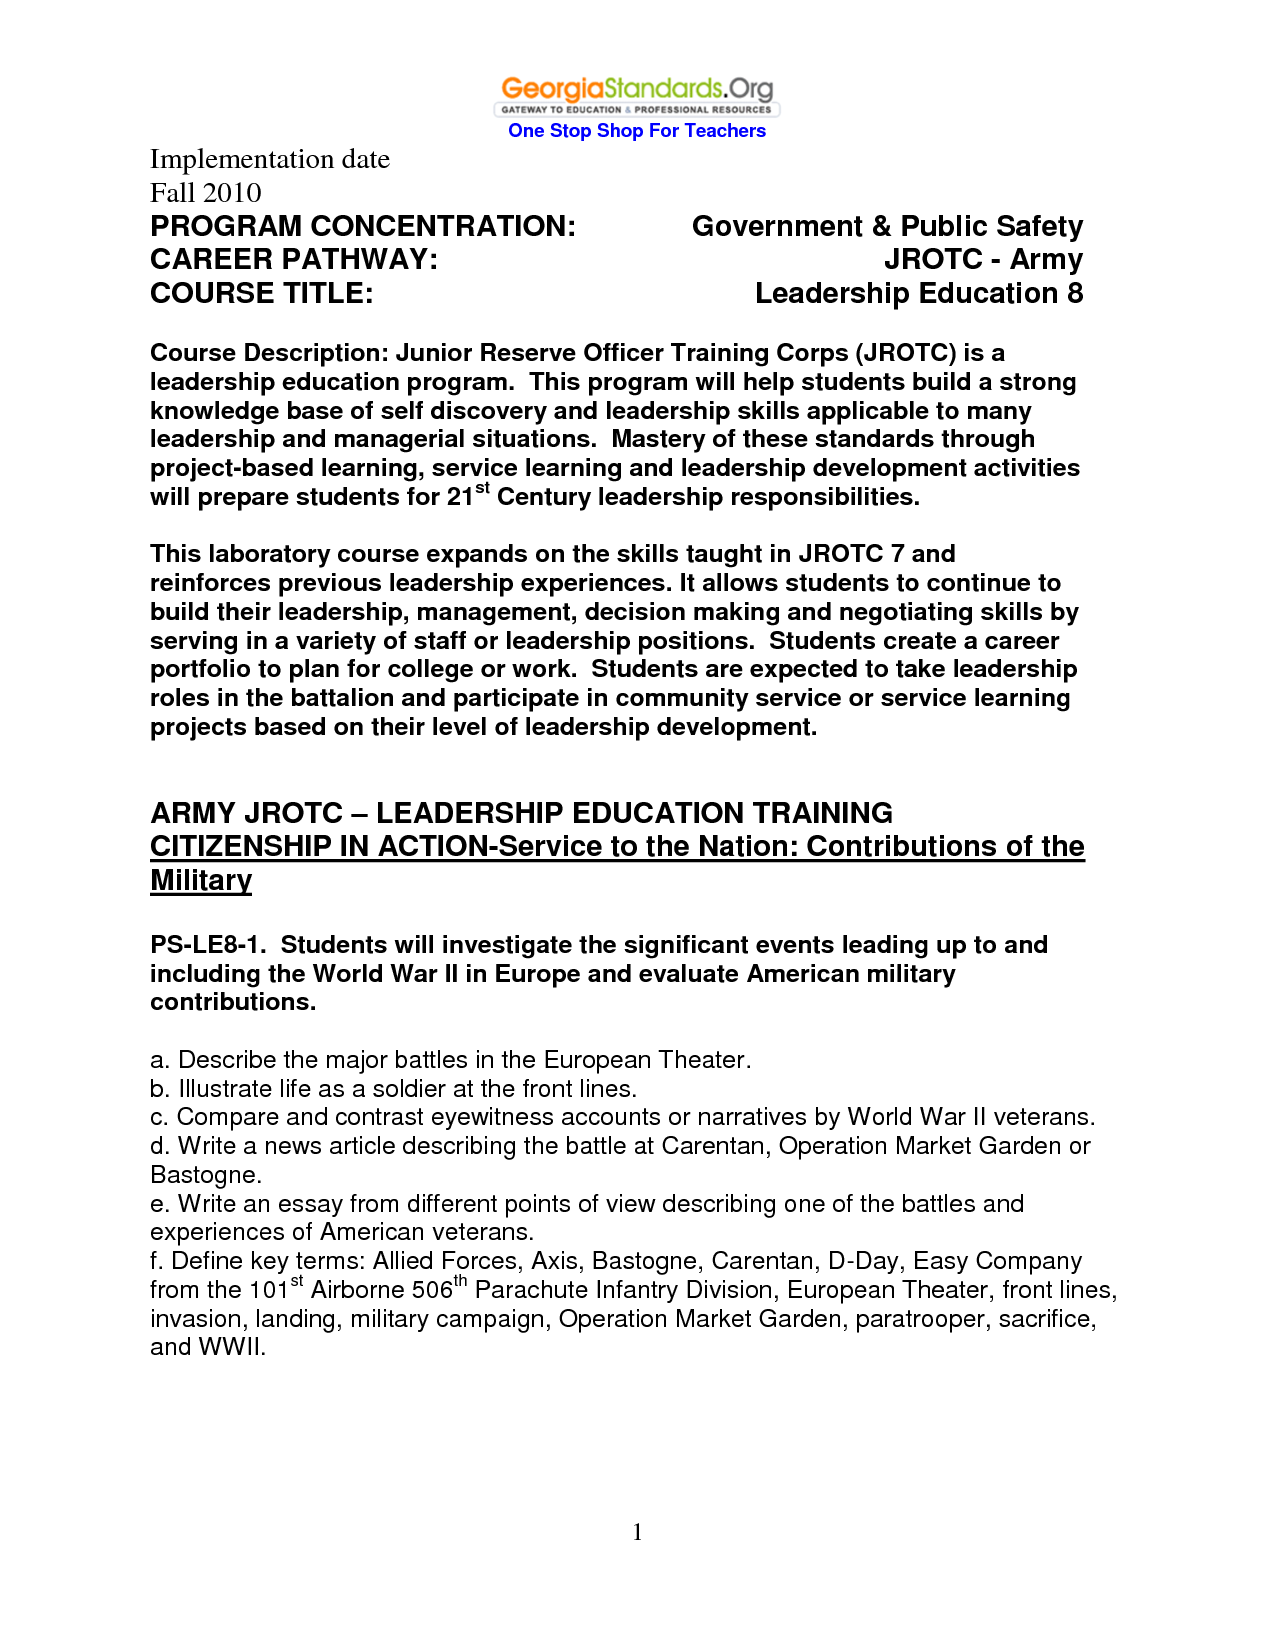 001 Rotc Research Paper Army Leadership Essayes Loyalty College Format On Officer Narrative Basic Training In Hindi Life Day One Page Values Free Accountability Being Time Of Pakistan Singular Essay Prompt Scholarship Application Questions Full